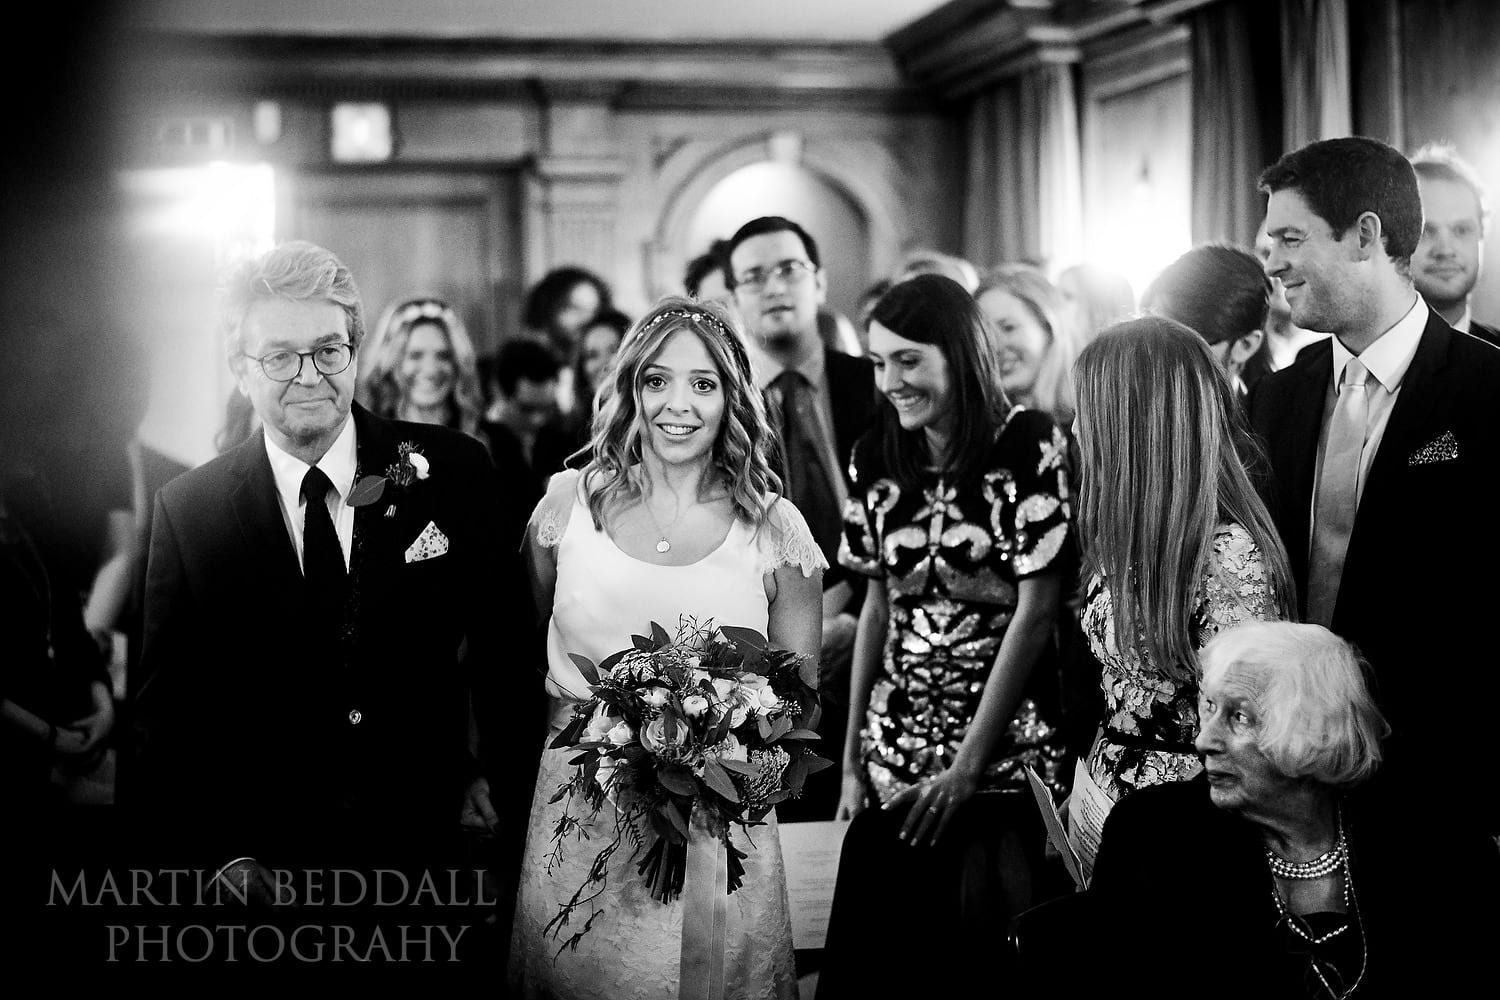 Wedding photography in 2016 at Burgh House